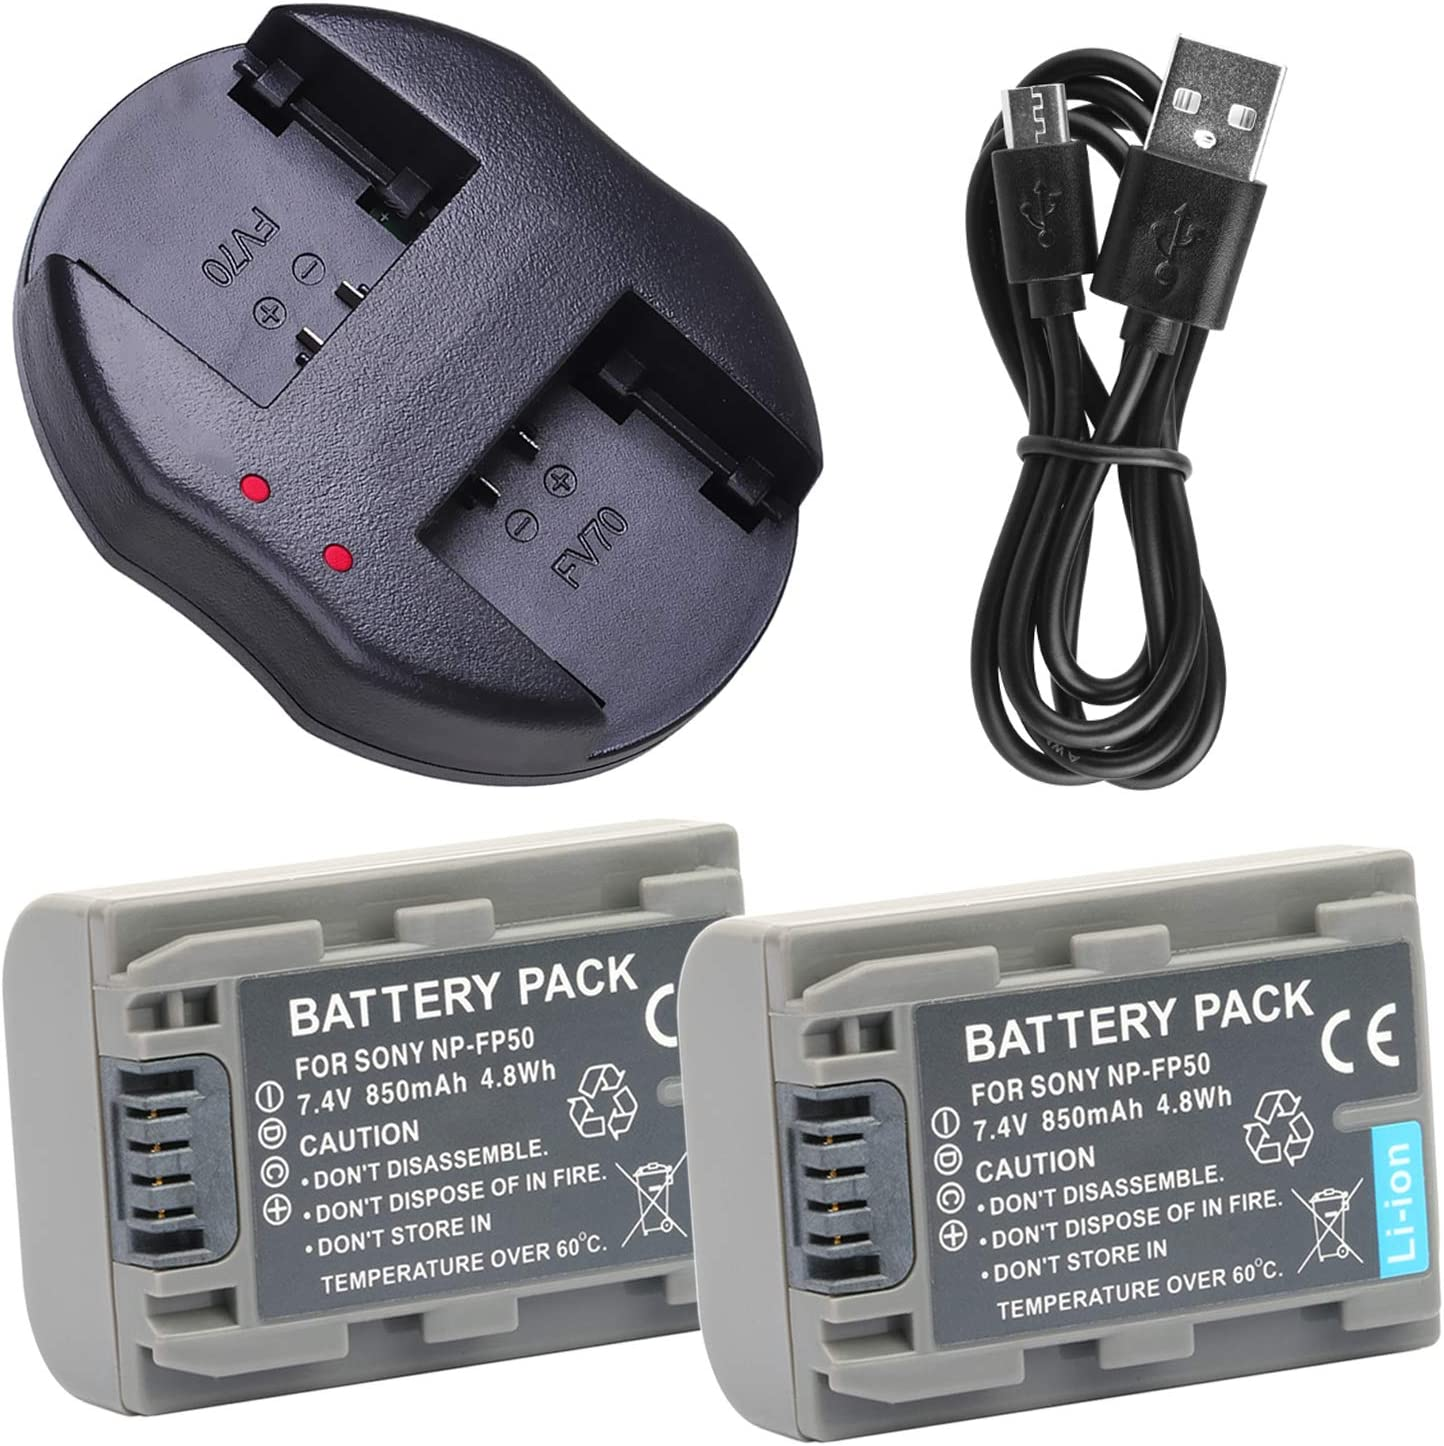 DCR-DVD602 Portable USB Battery Charger for Sony DCR-DVD505 DCR-DVD505E DCR-DVD602E Handycam Camcorder